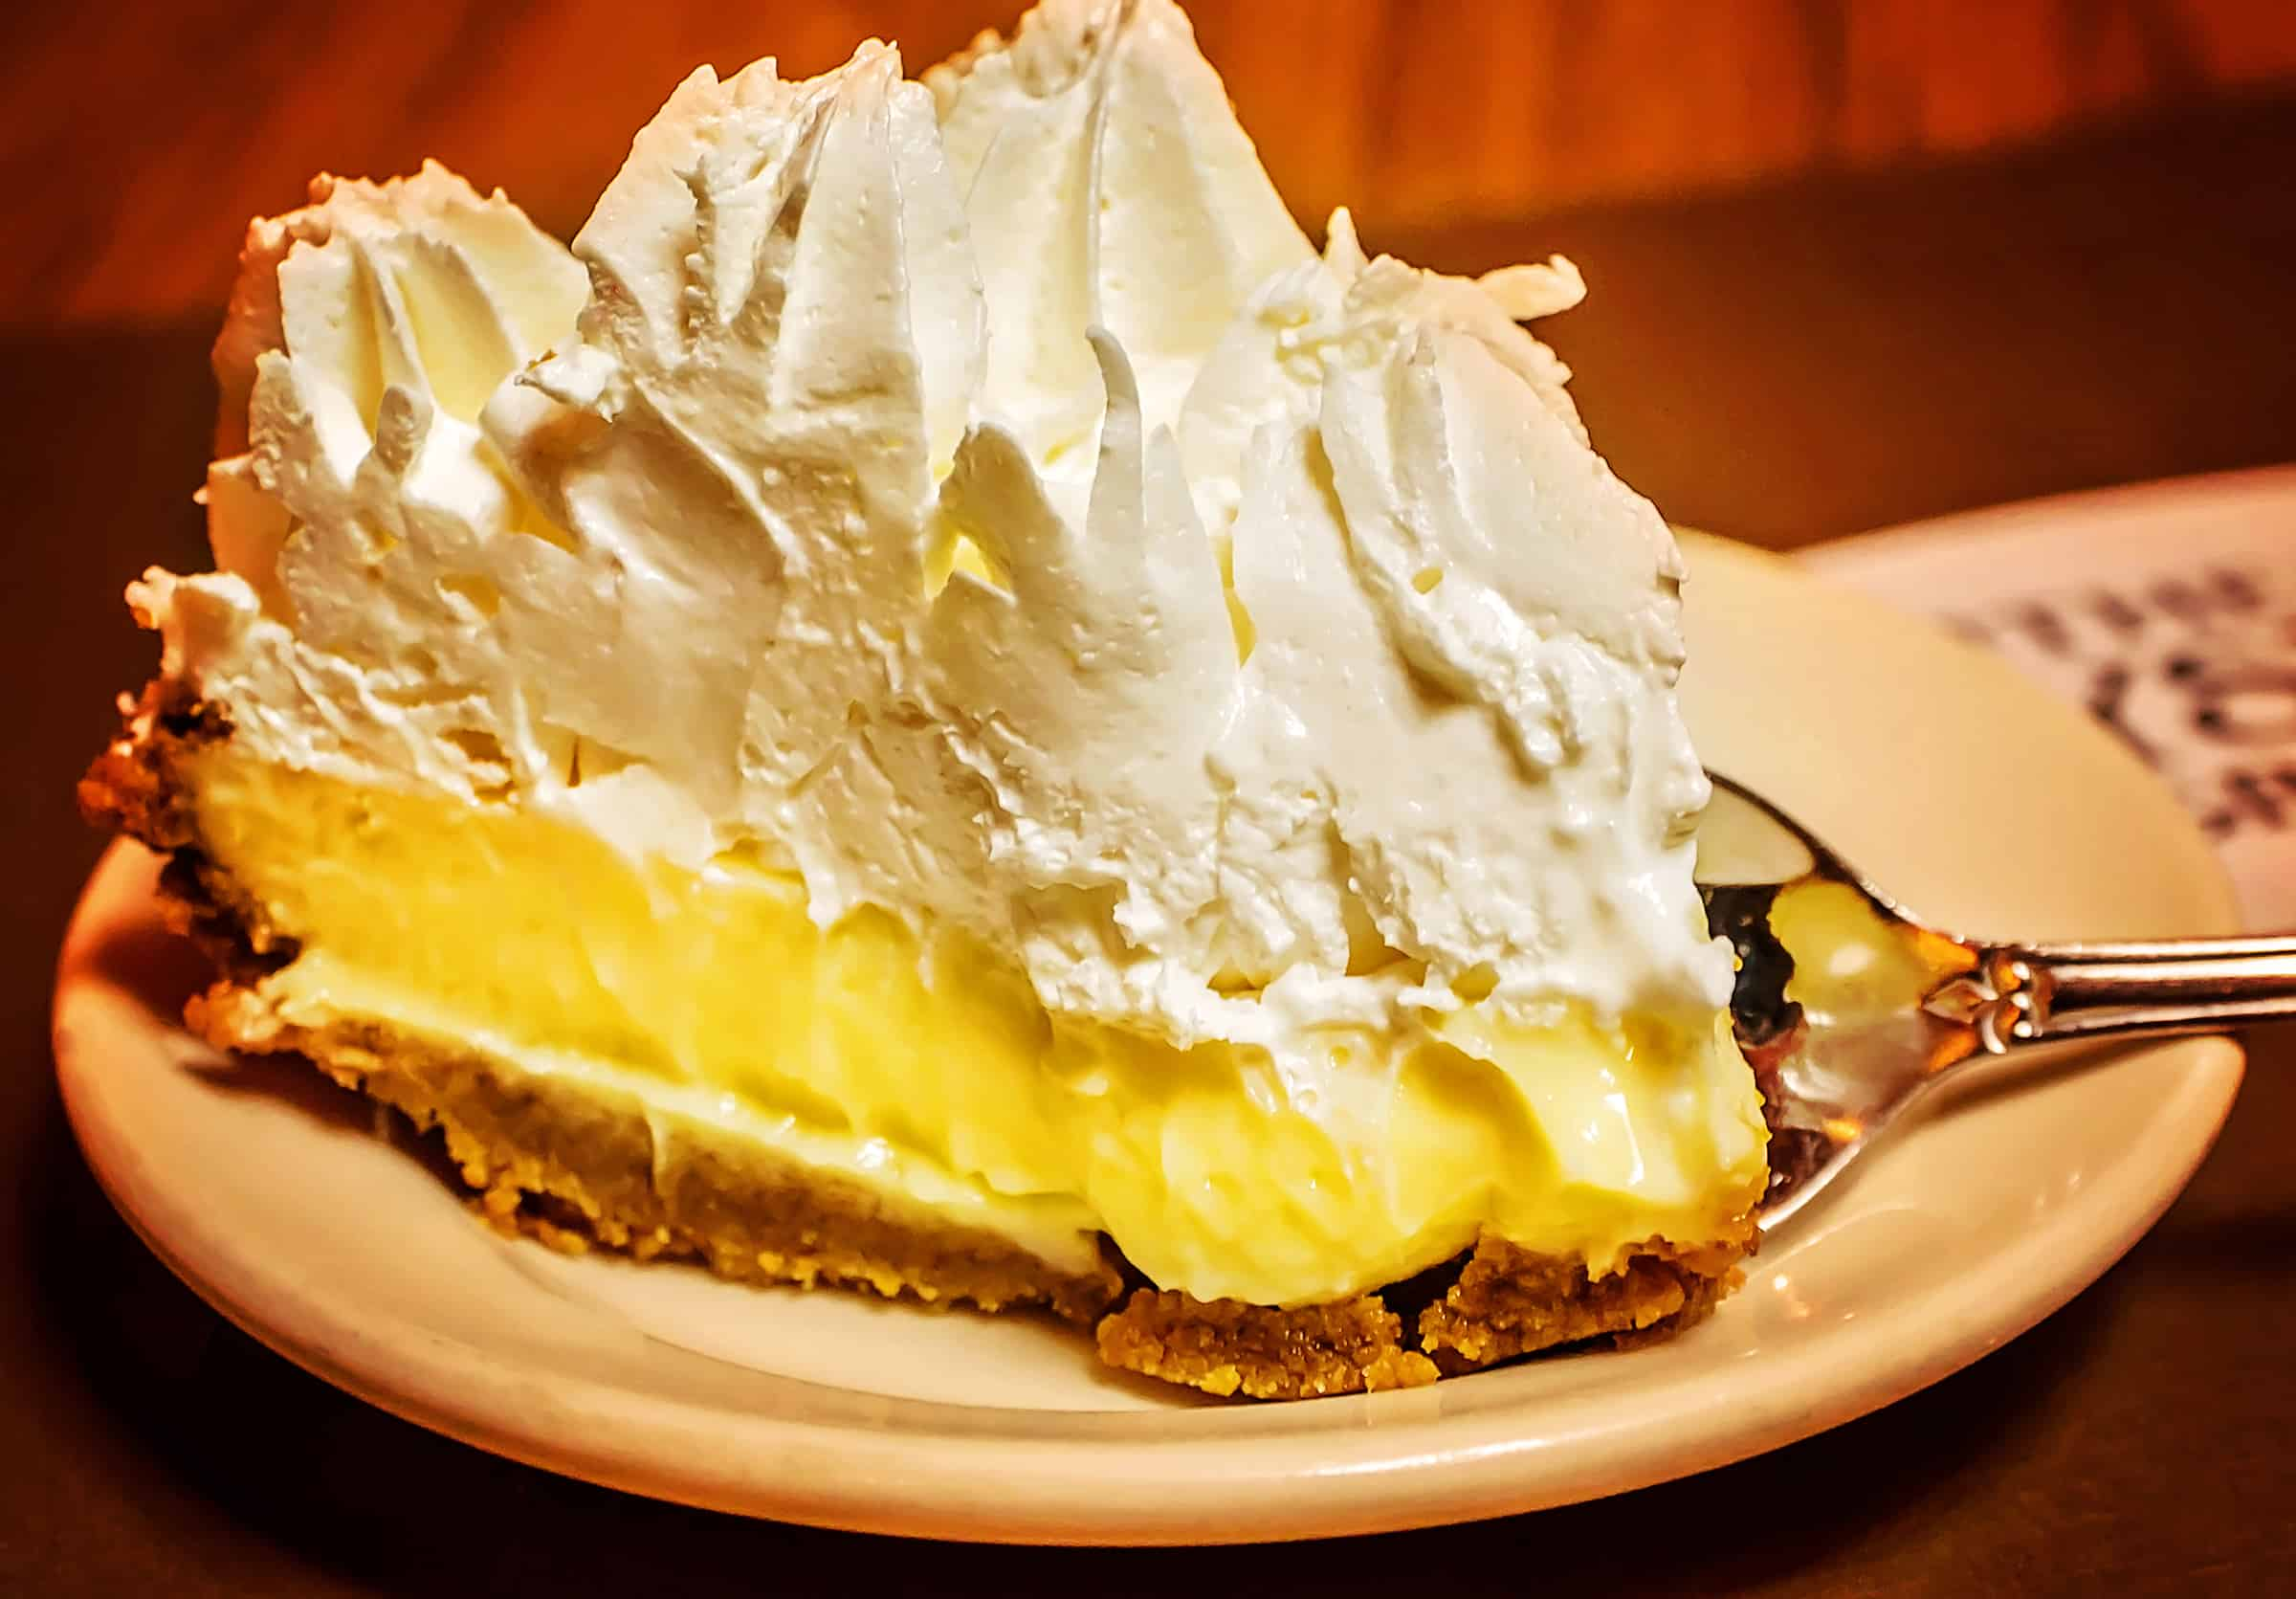 Lemon Icebox Pie at Crystal Grill in Greenwood, Mississippi